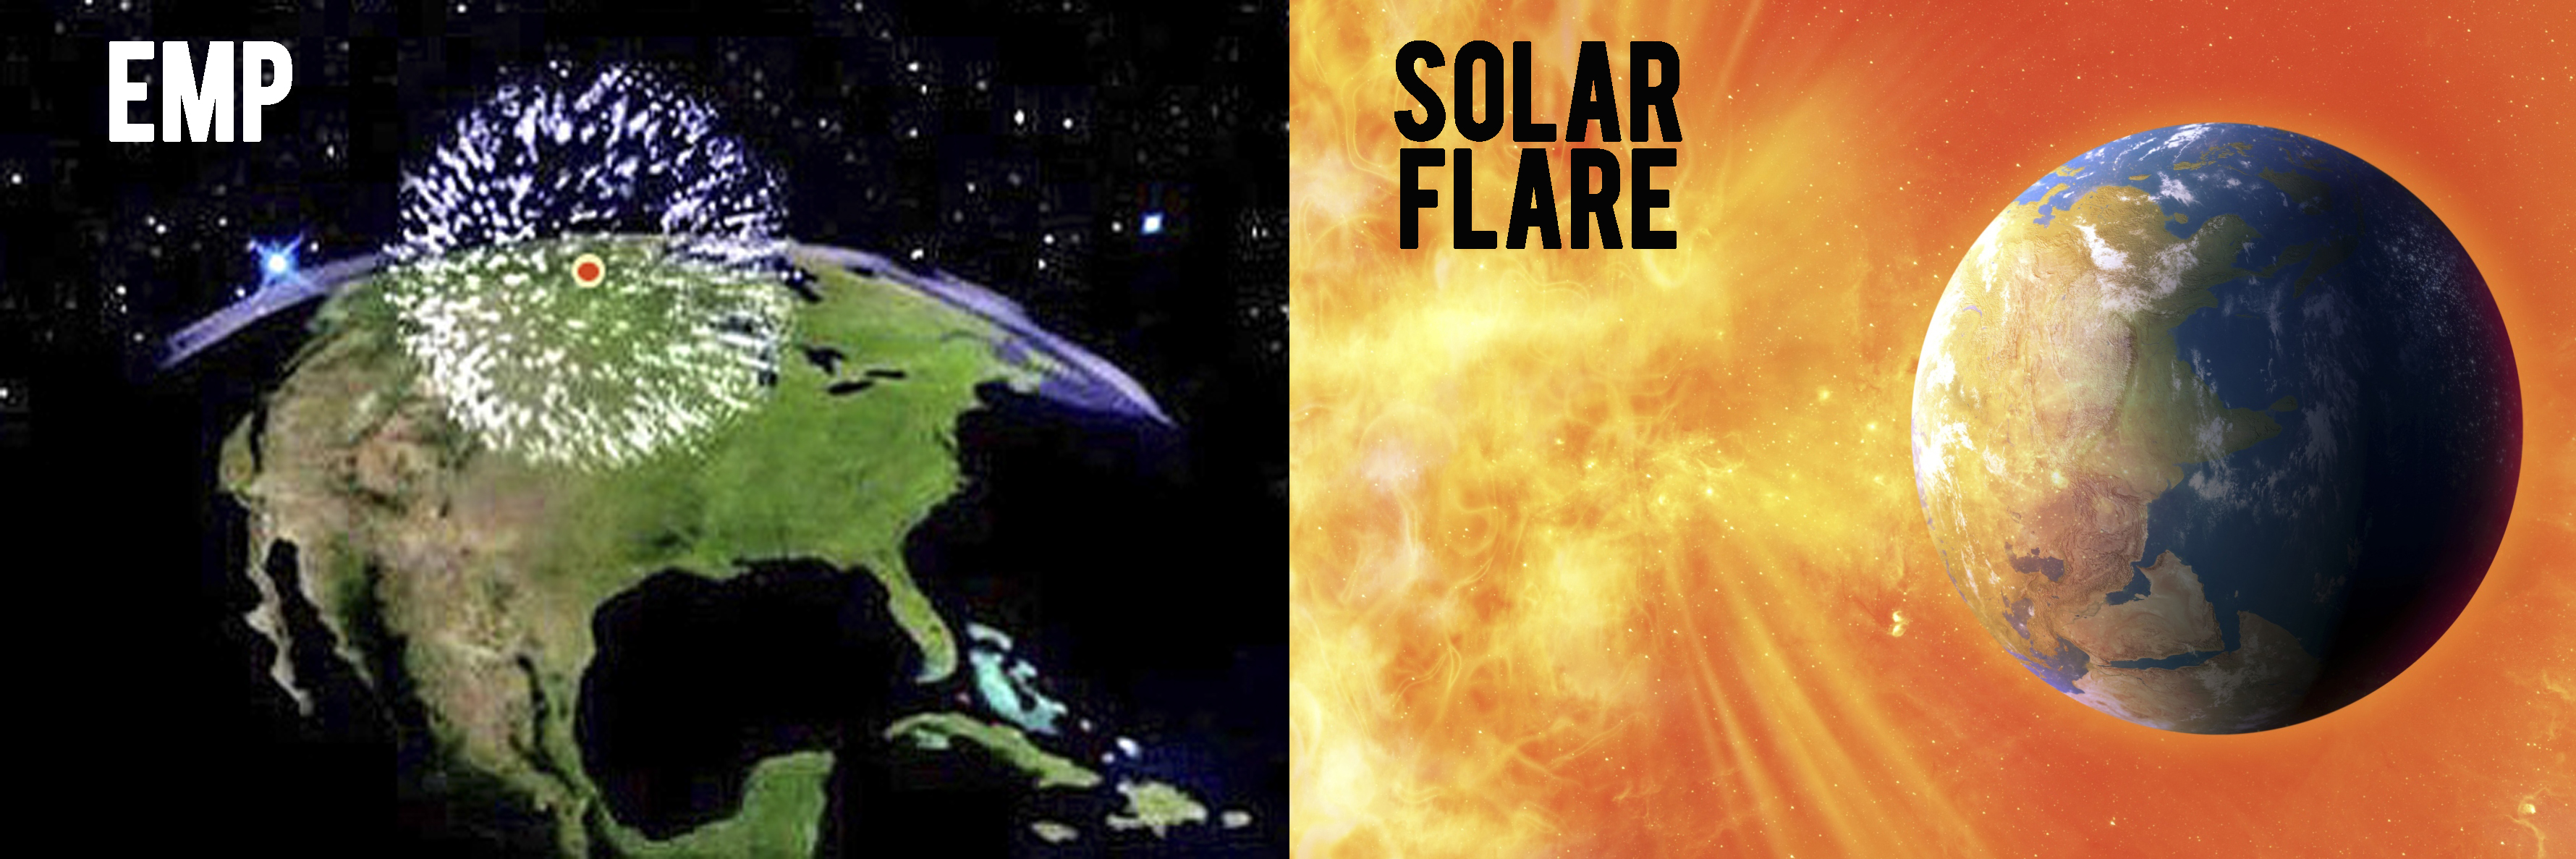 EMP-and-Solar_Flare-side-by-side-Illustration